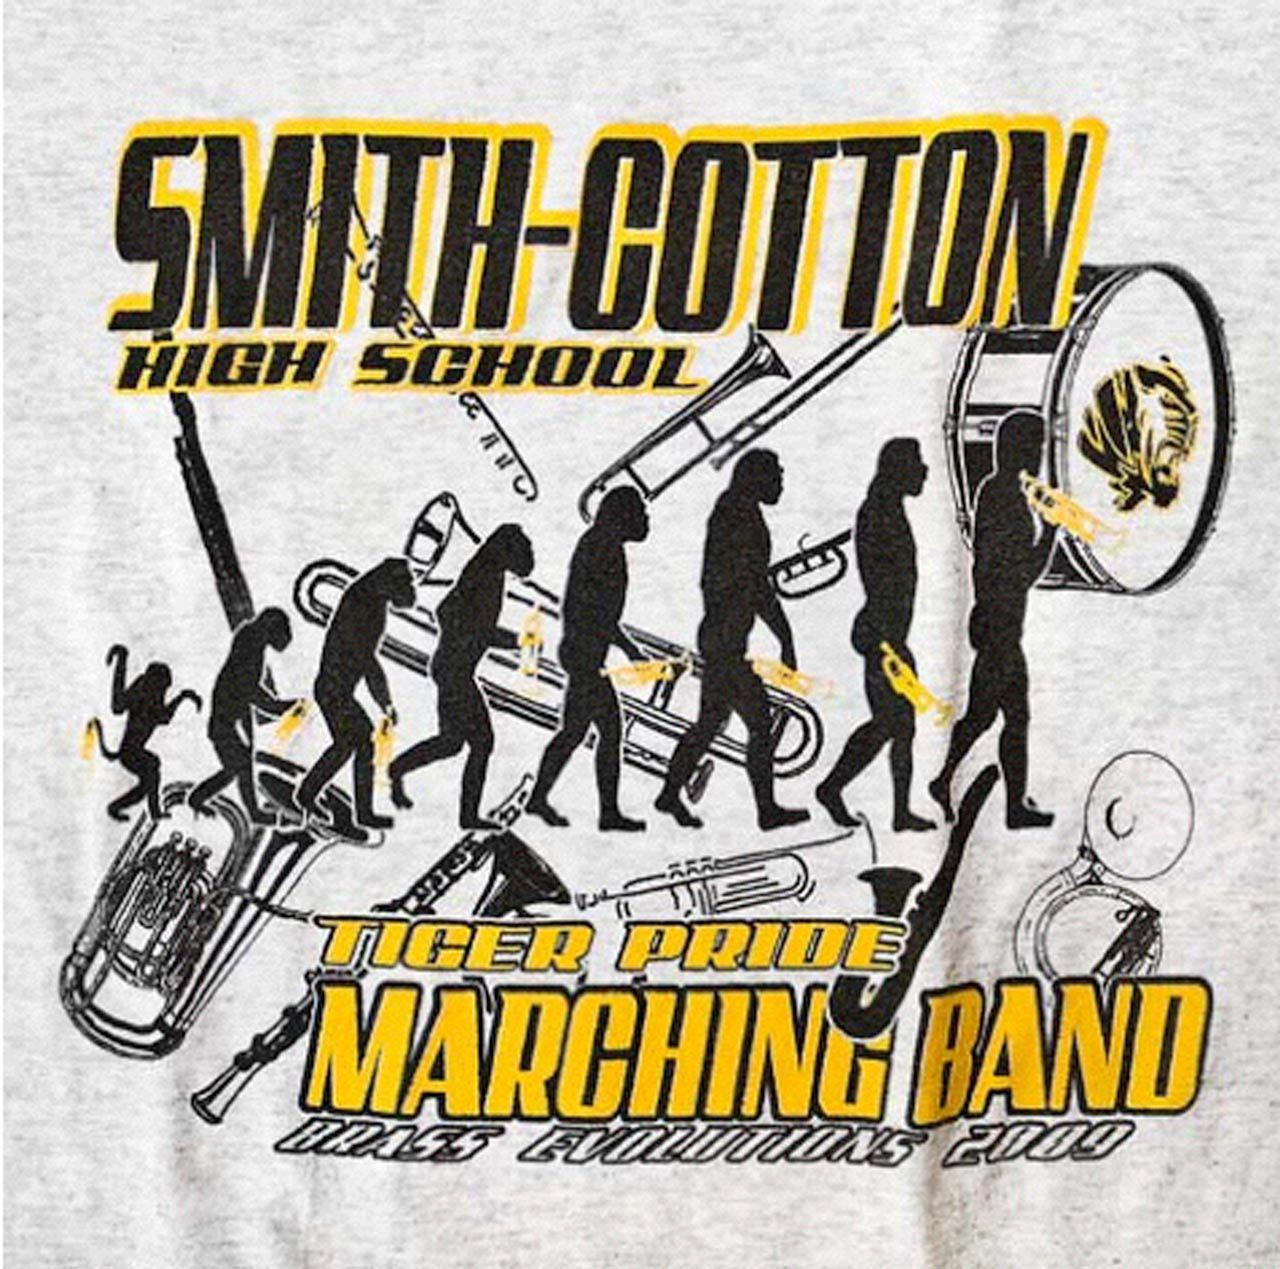 A high school marching band's T-shirt places a horn-playing <em>Homo sapiens</em> at the end of the evolutionary process.